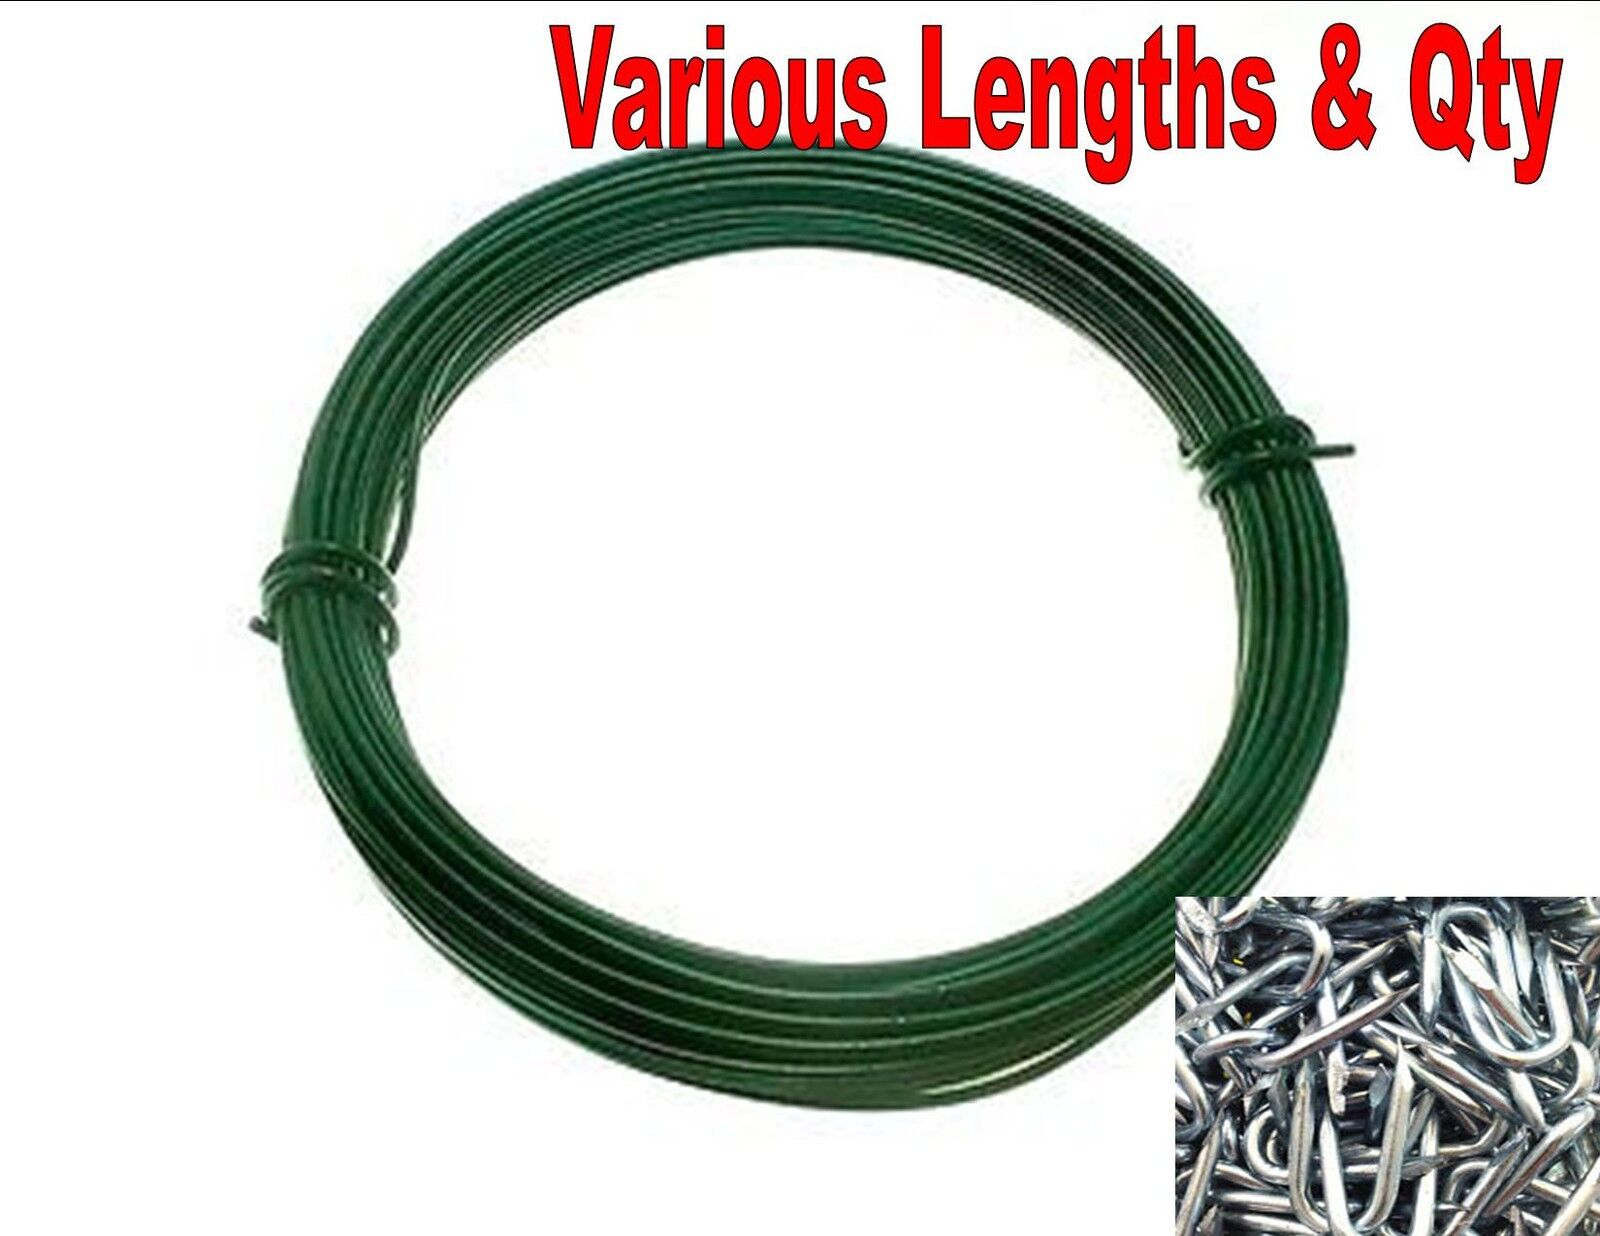 Tendifilo Plastic Green for Wire Fence Kit 5 pieces